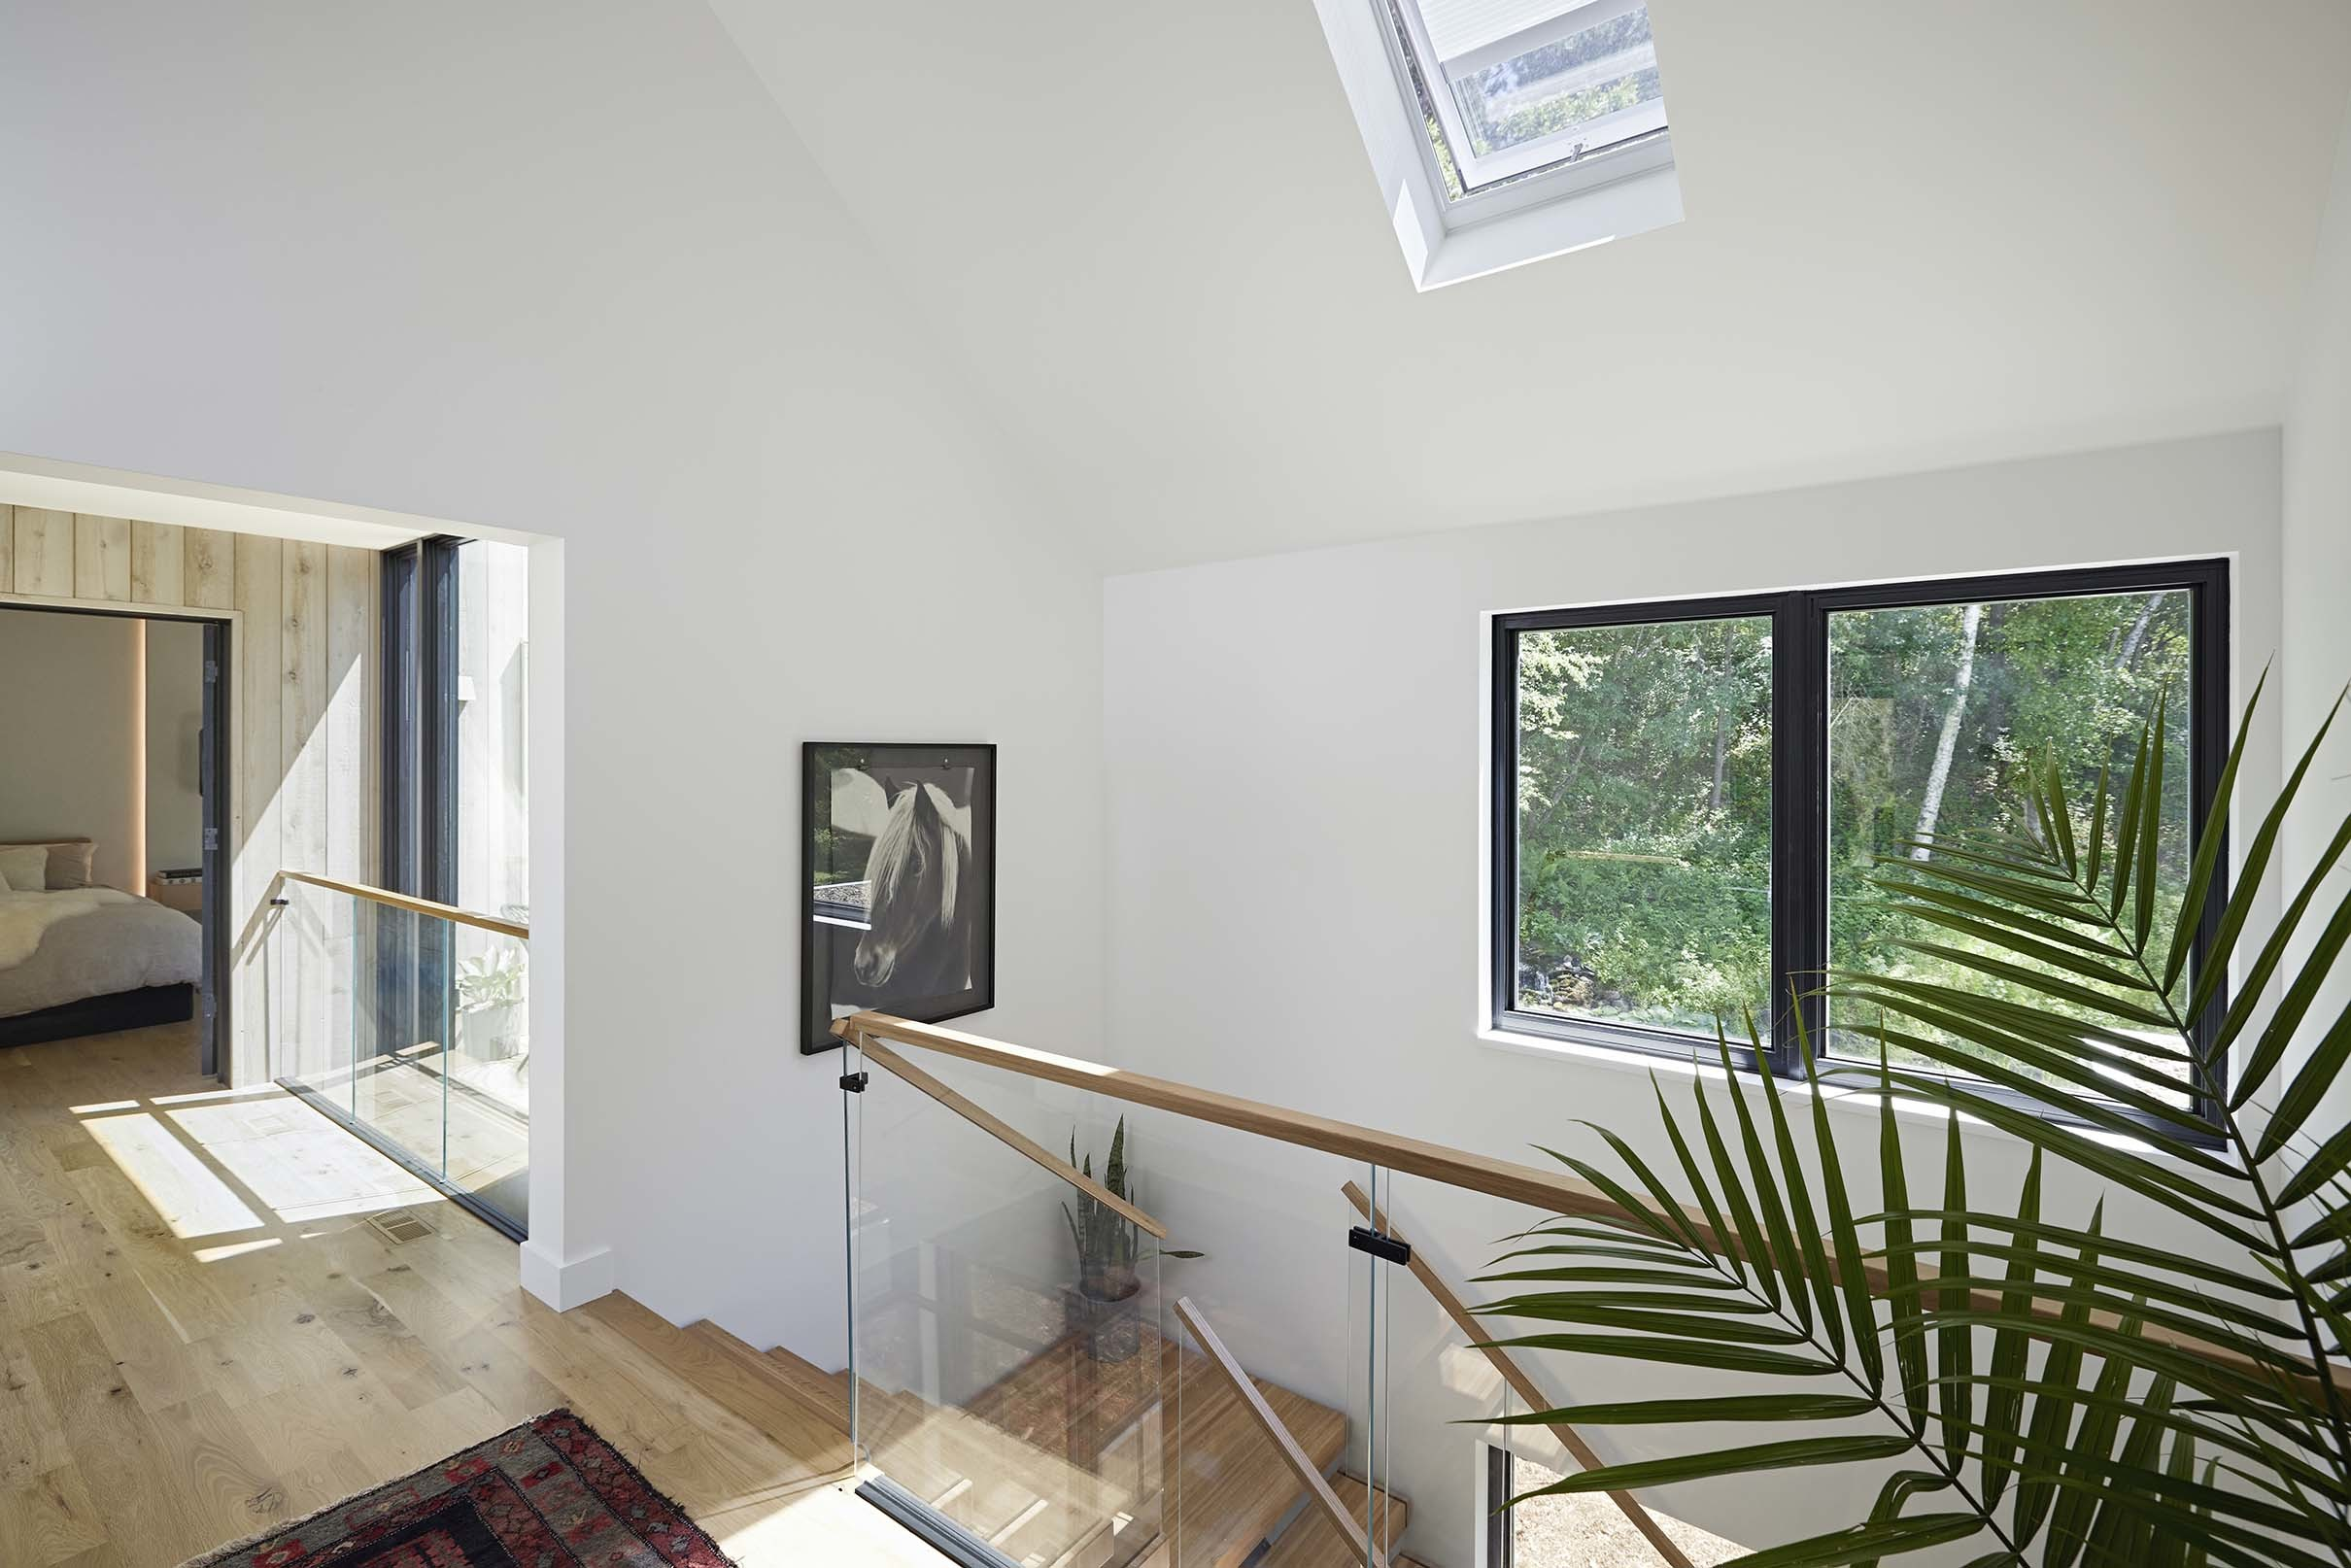 Stairwell skylight plant white wood small